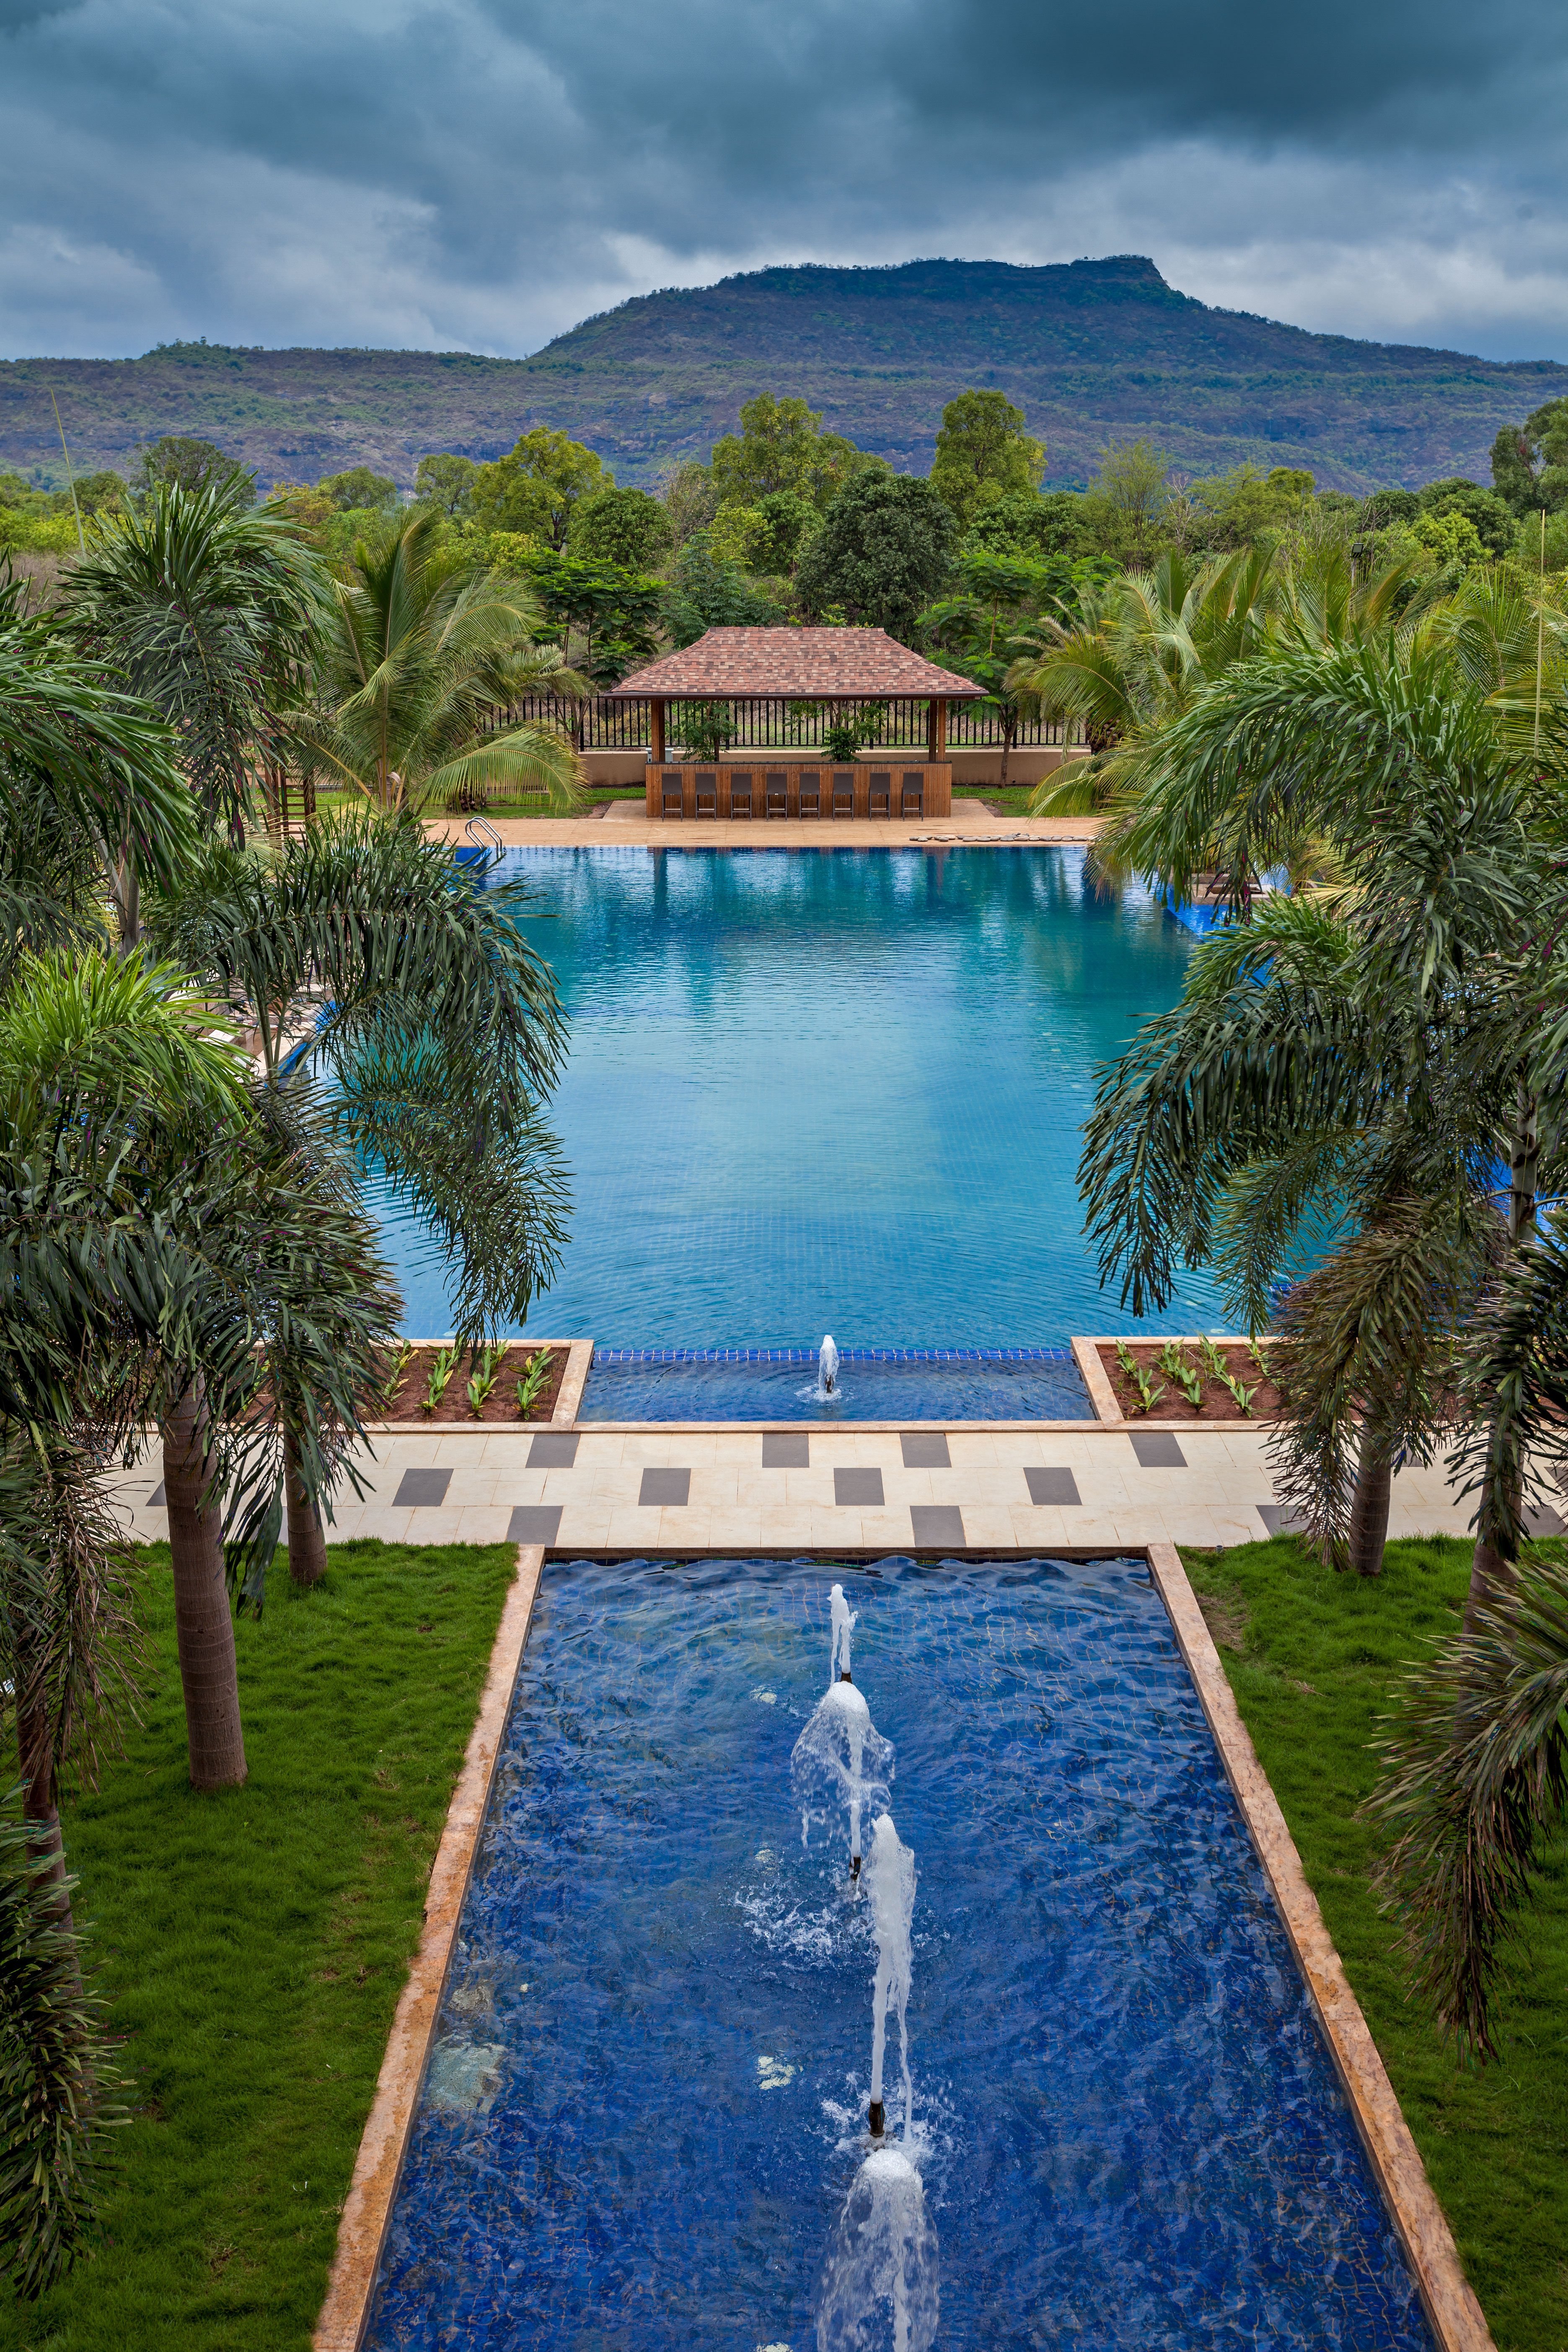 Radisson blu opens its first resort and spa in karjat india - Cost of building a swimming pool in india ...